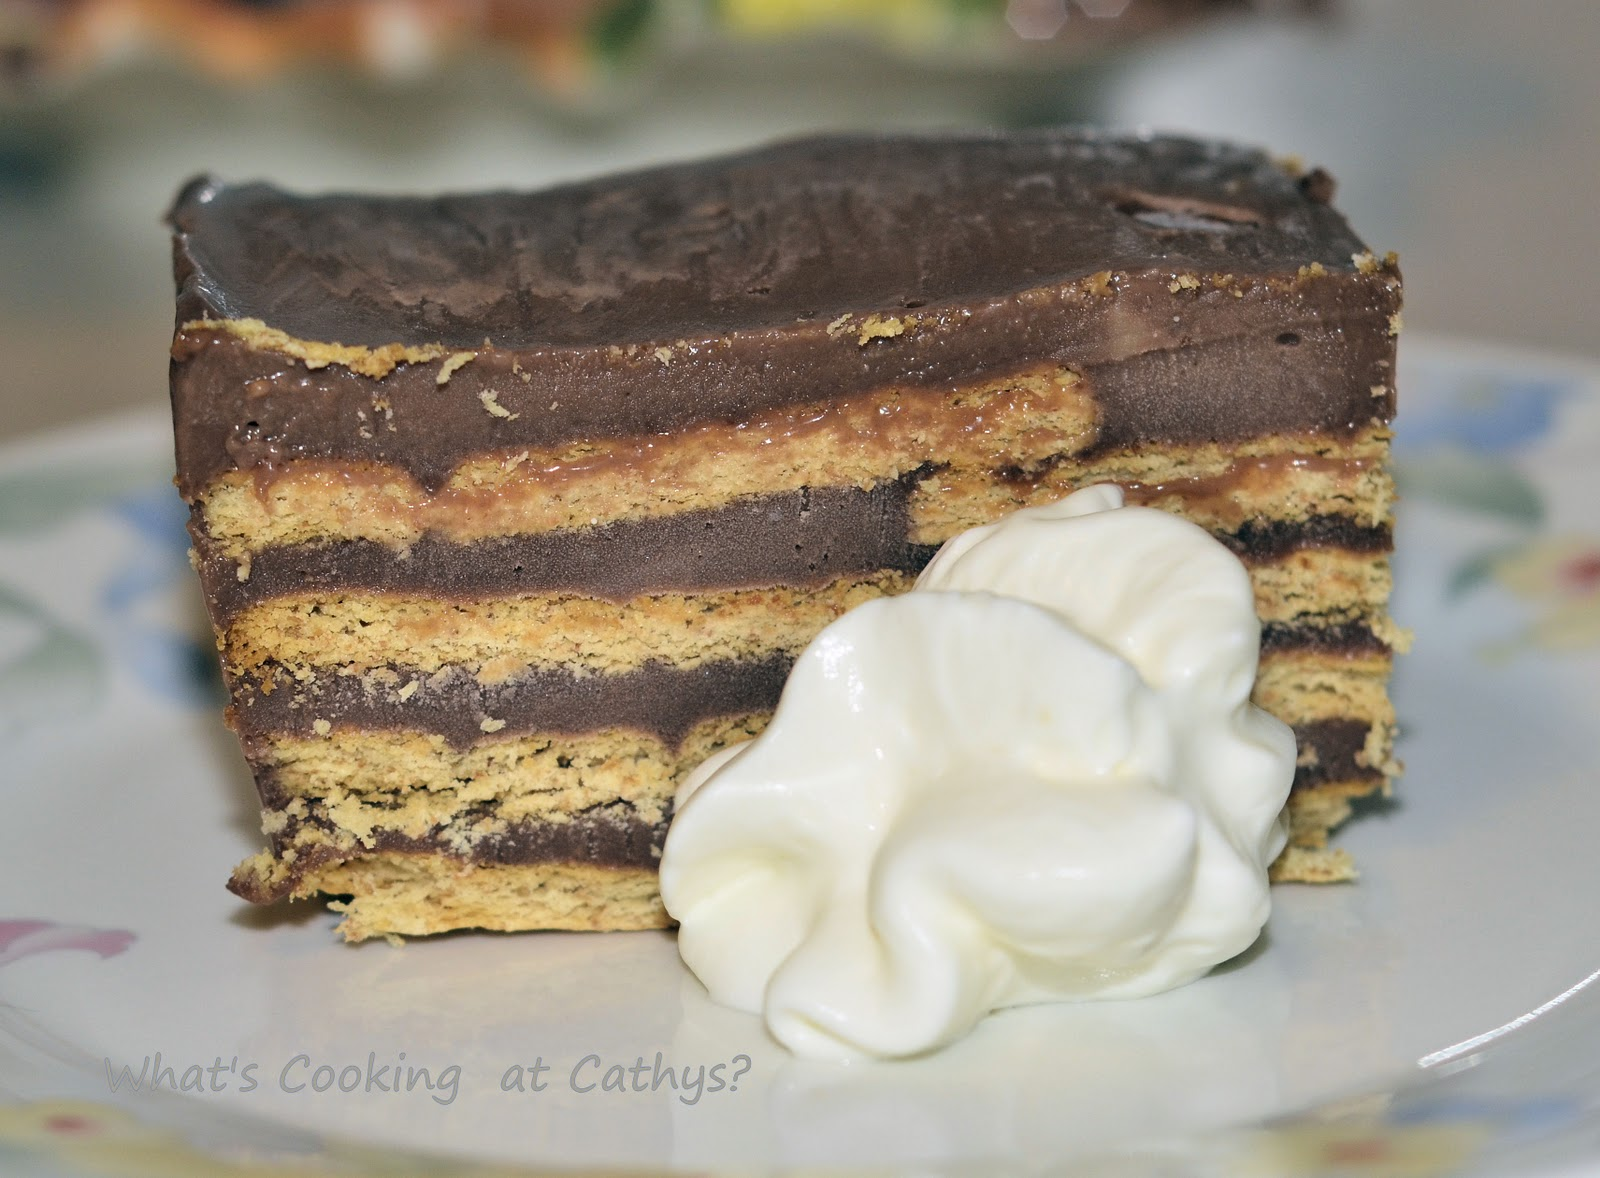 What's Cooking At Cathy's?: Nutella Ice Box Cake